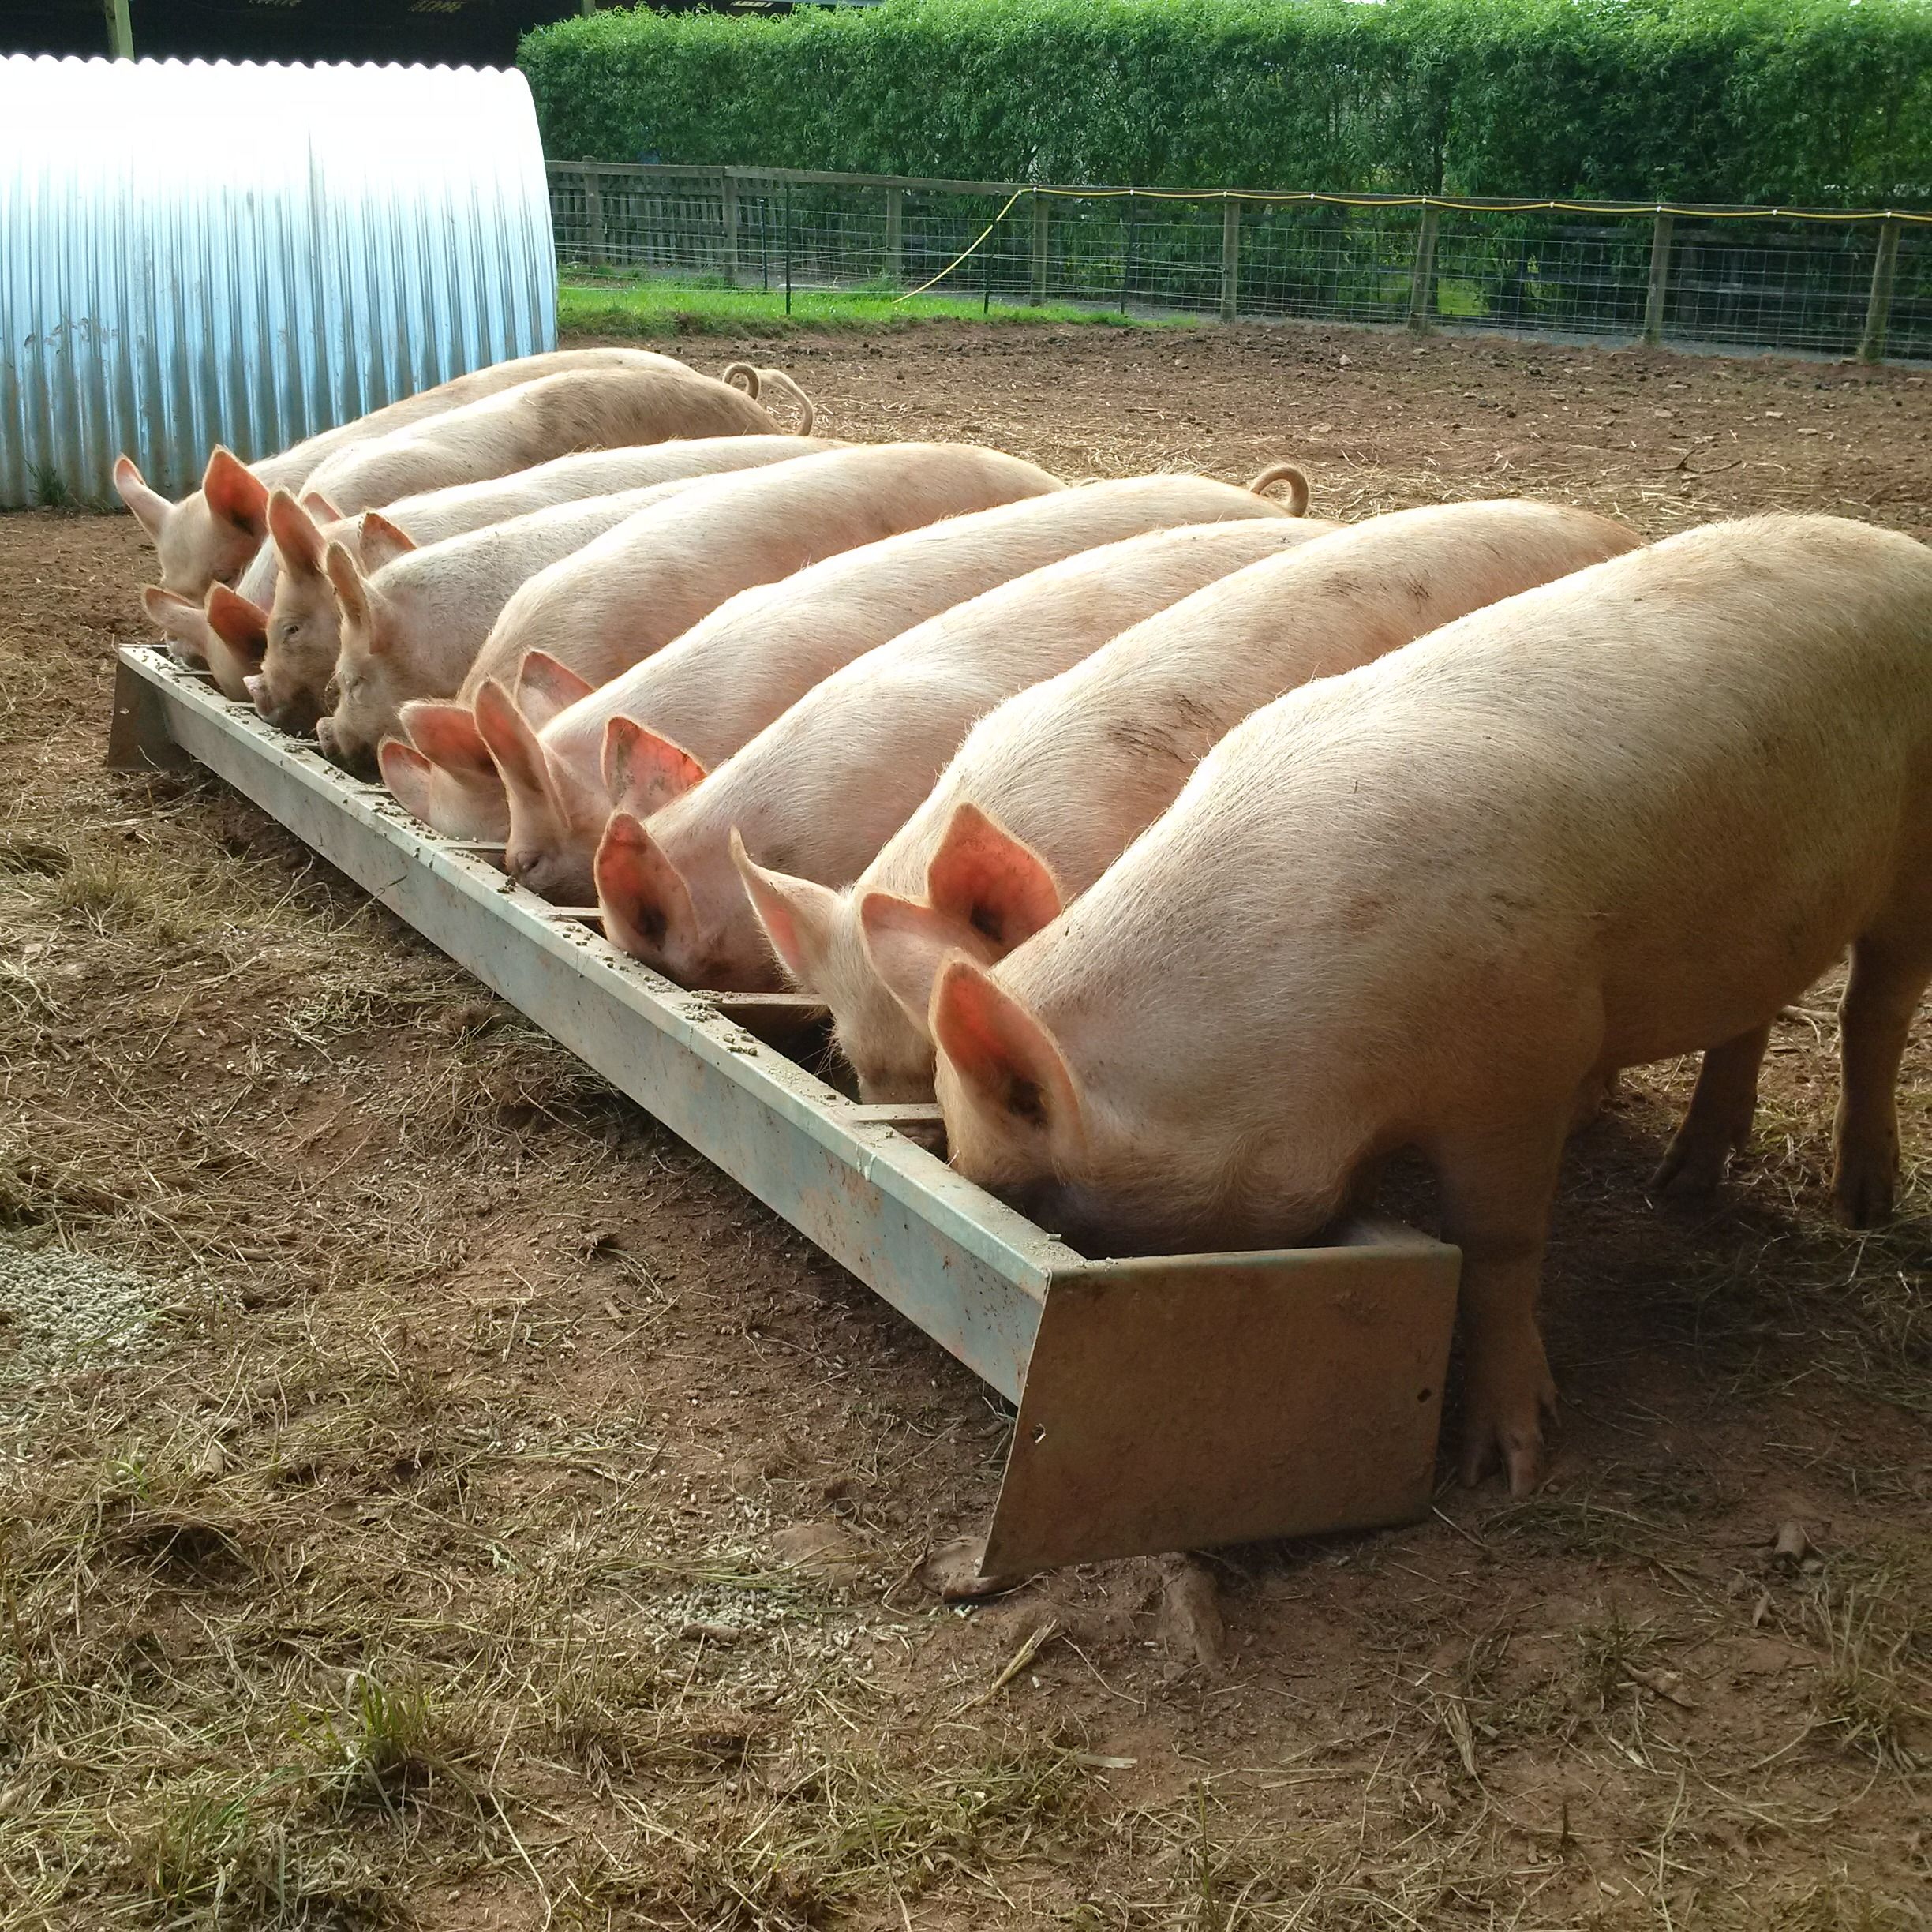 Middle White Pigs At Feeding Time